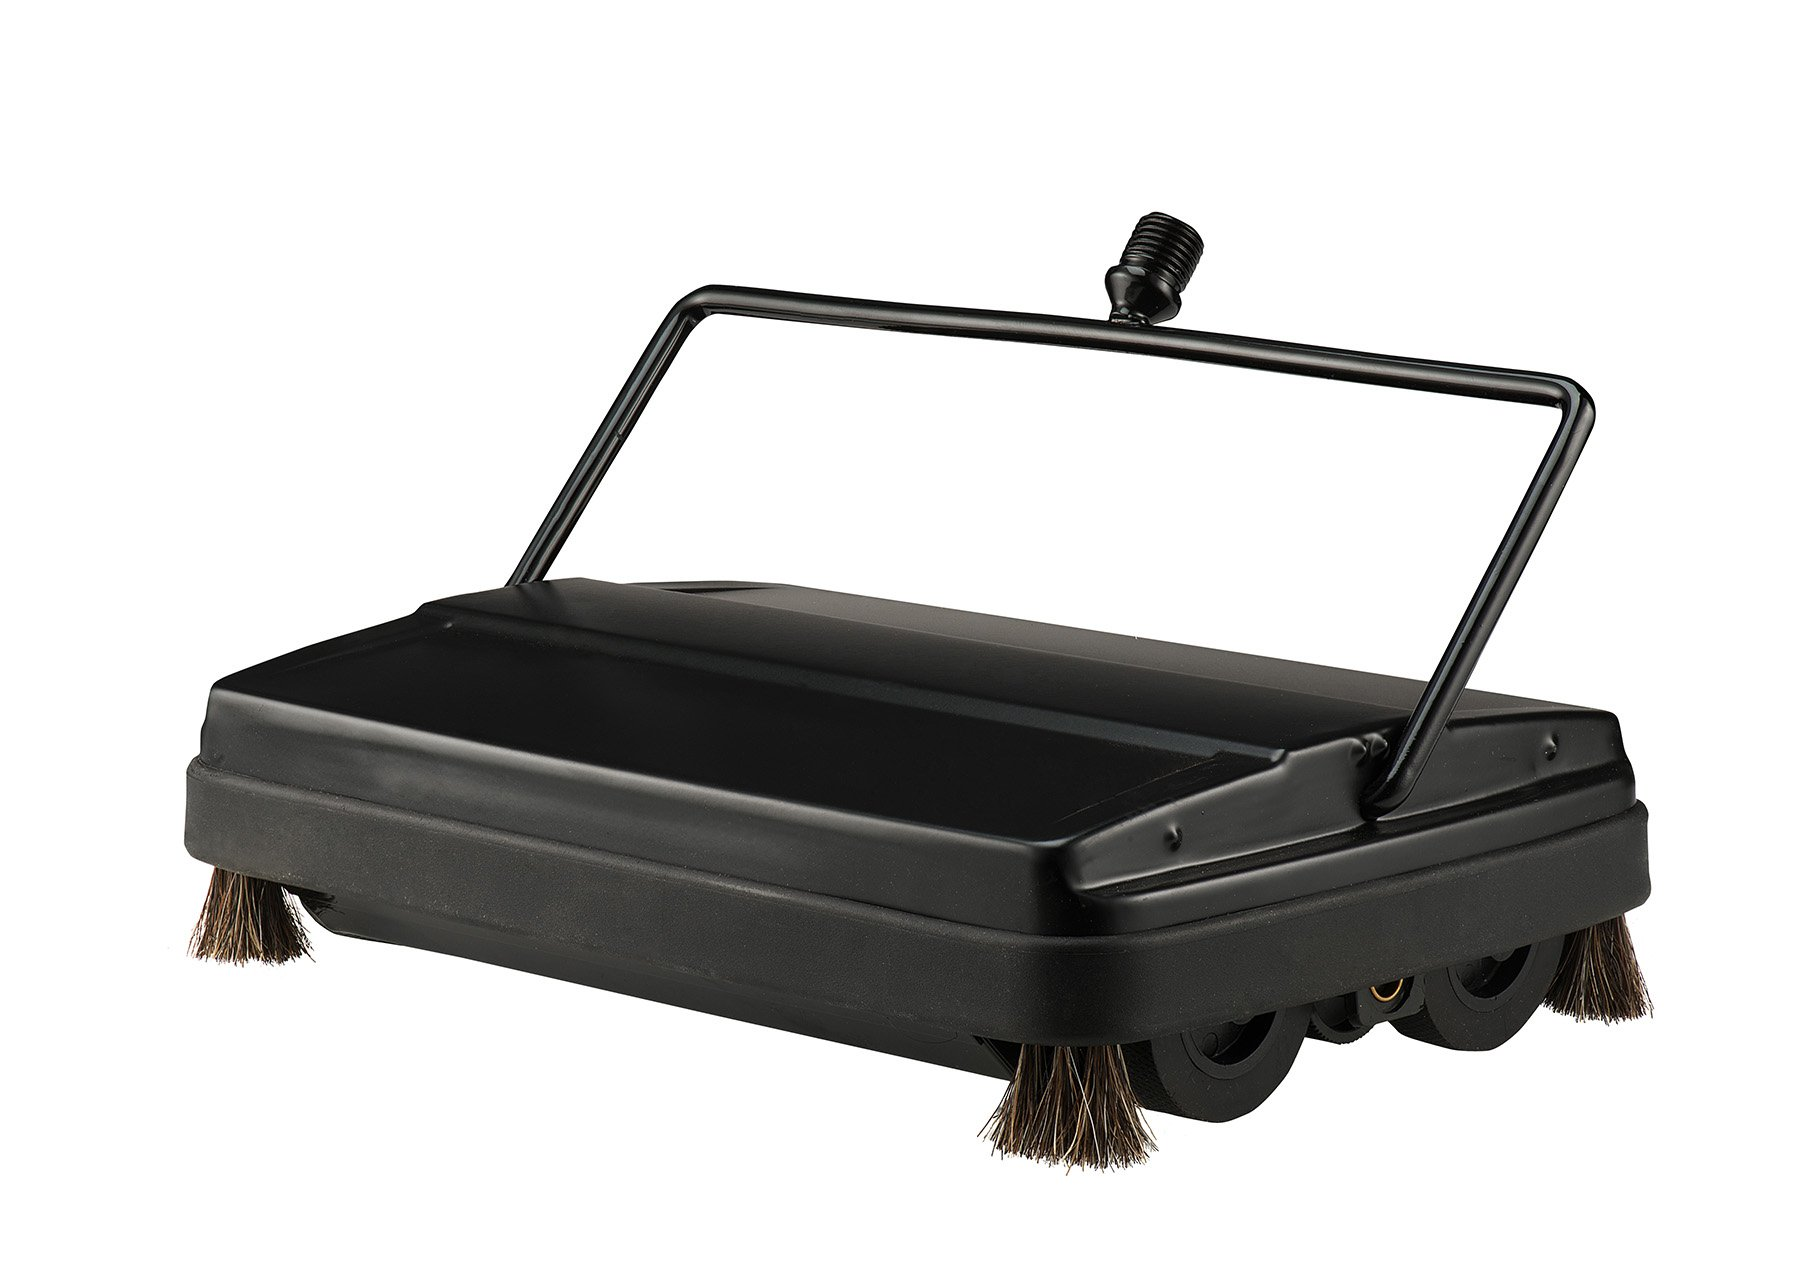 Sagler Compact Carpet Sweeper and Floor Sweeper High Quality Sweepers Electrostatic Sweeper by Sagler